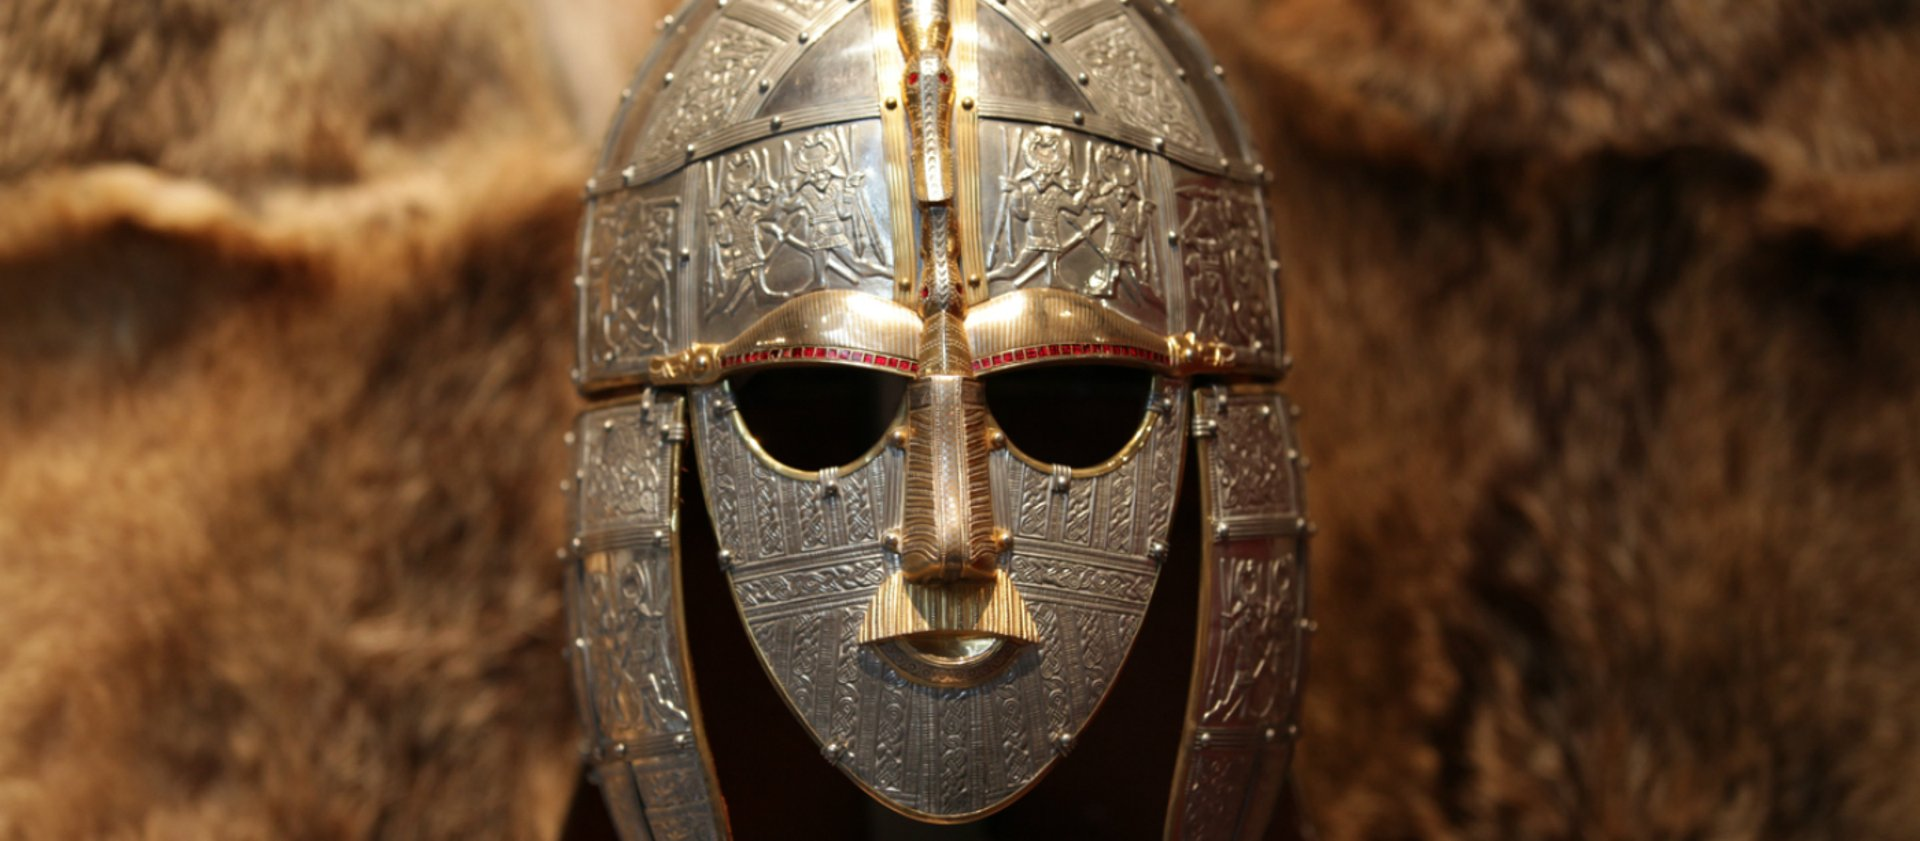 History in Suffolk, Anglo Saxon Helmet